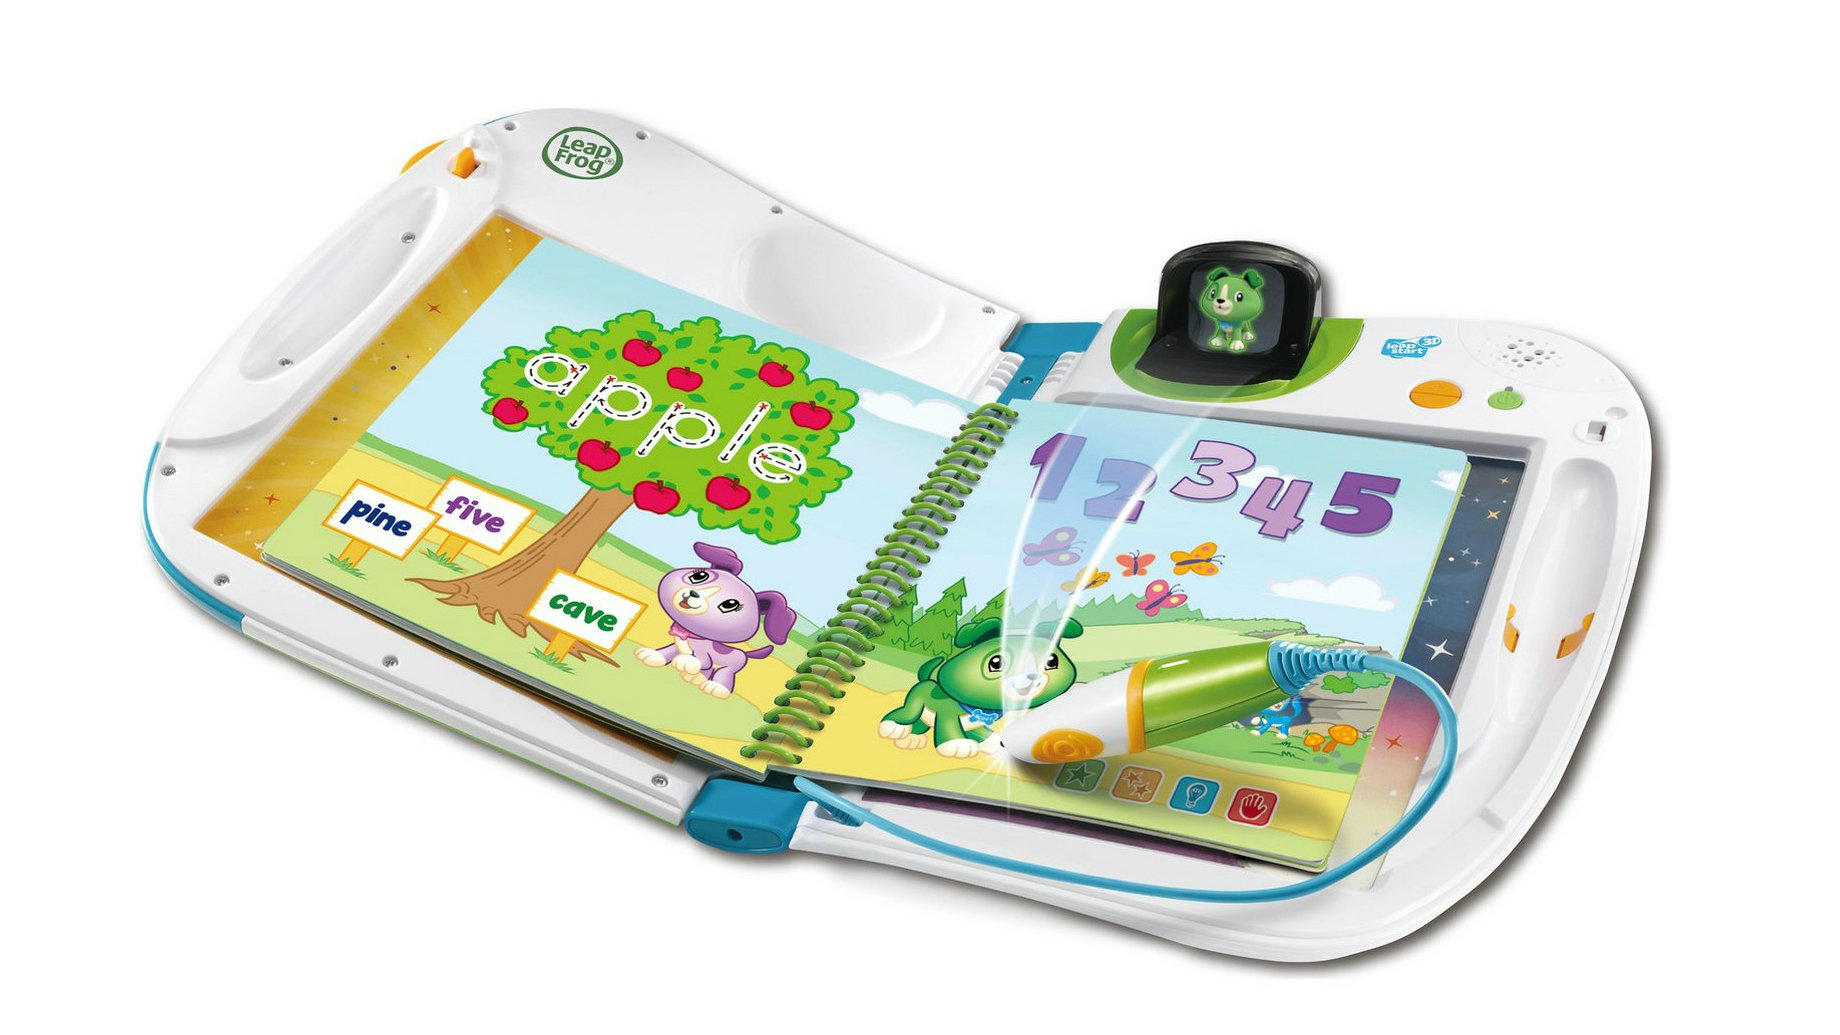 94538c6a5 This interactive 3D learning system helps children with reading, as well as  maths and problem-solving. There's a library of over 25 books (but ...